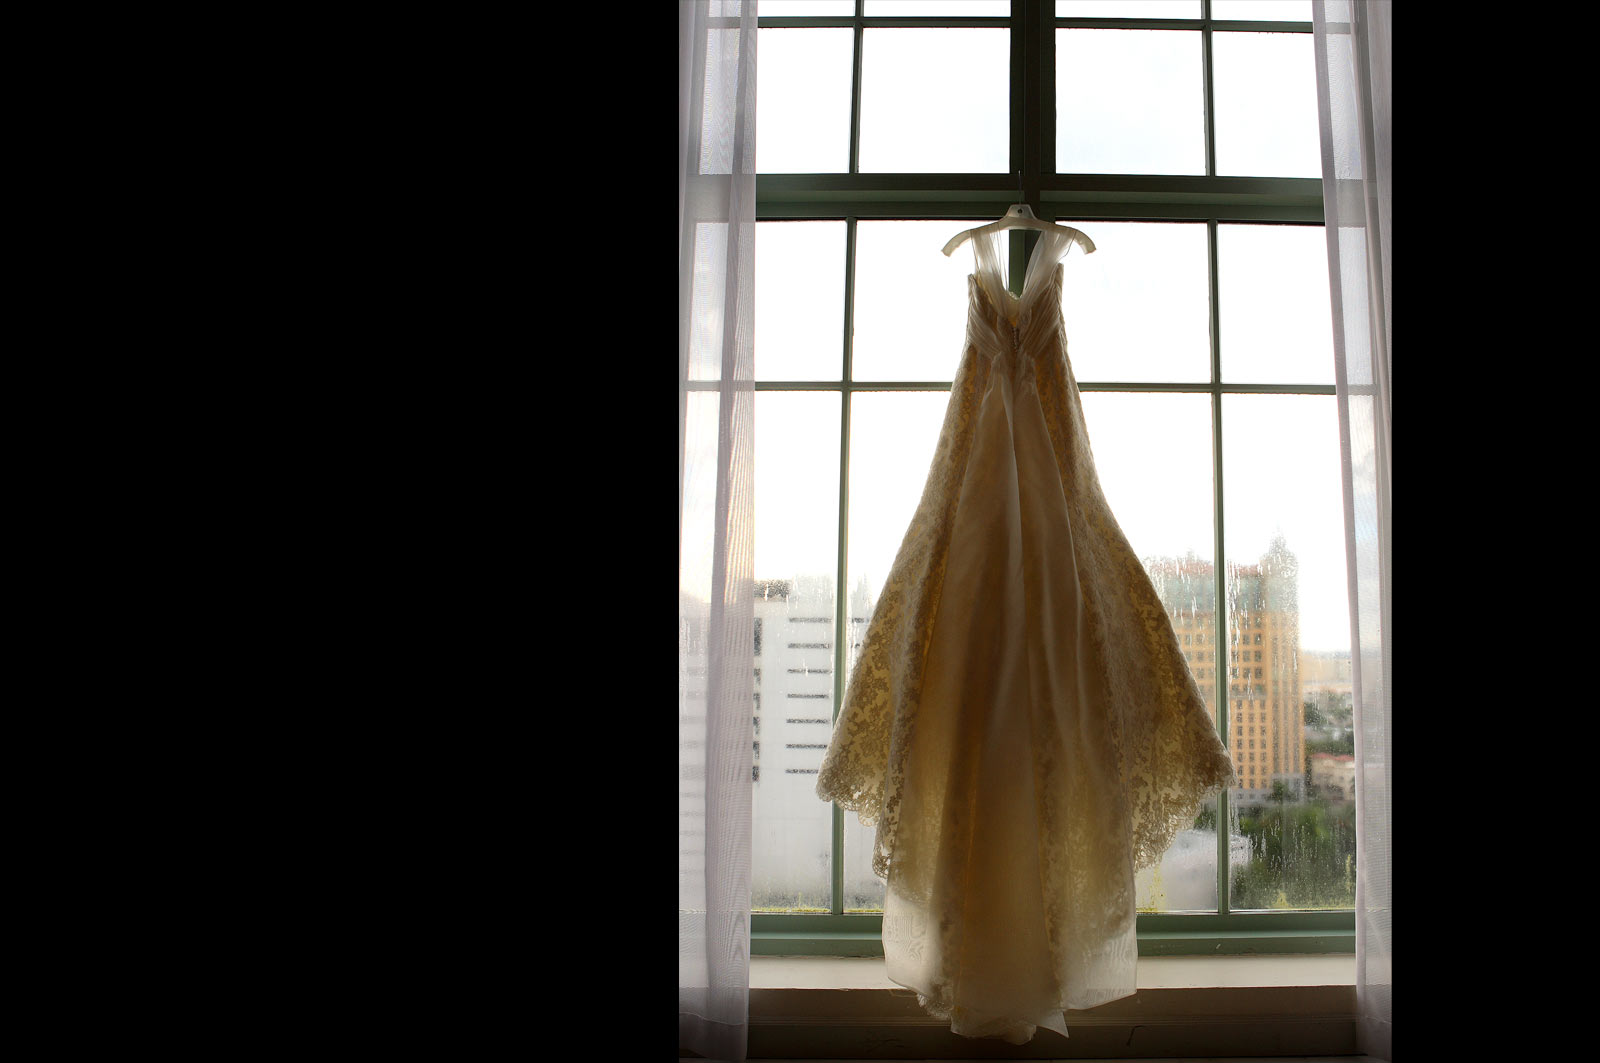 Bride Dress Hanging from Window - Photo by J. Garcia